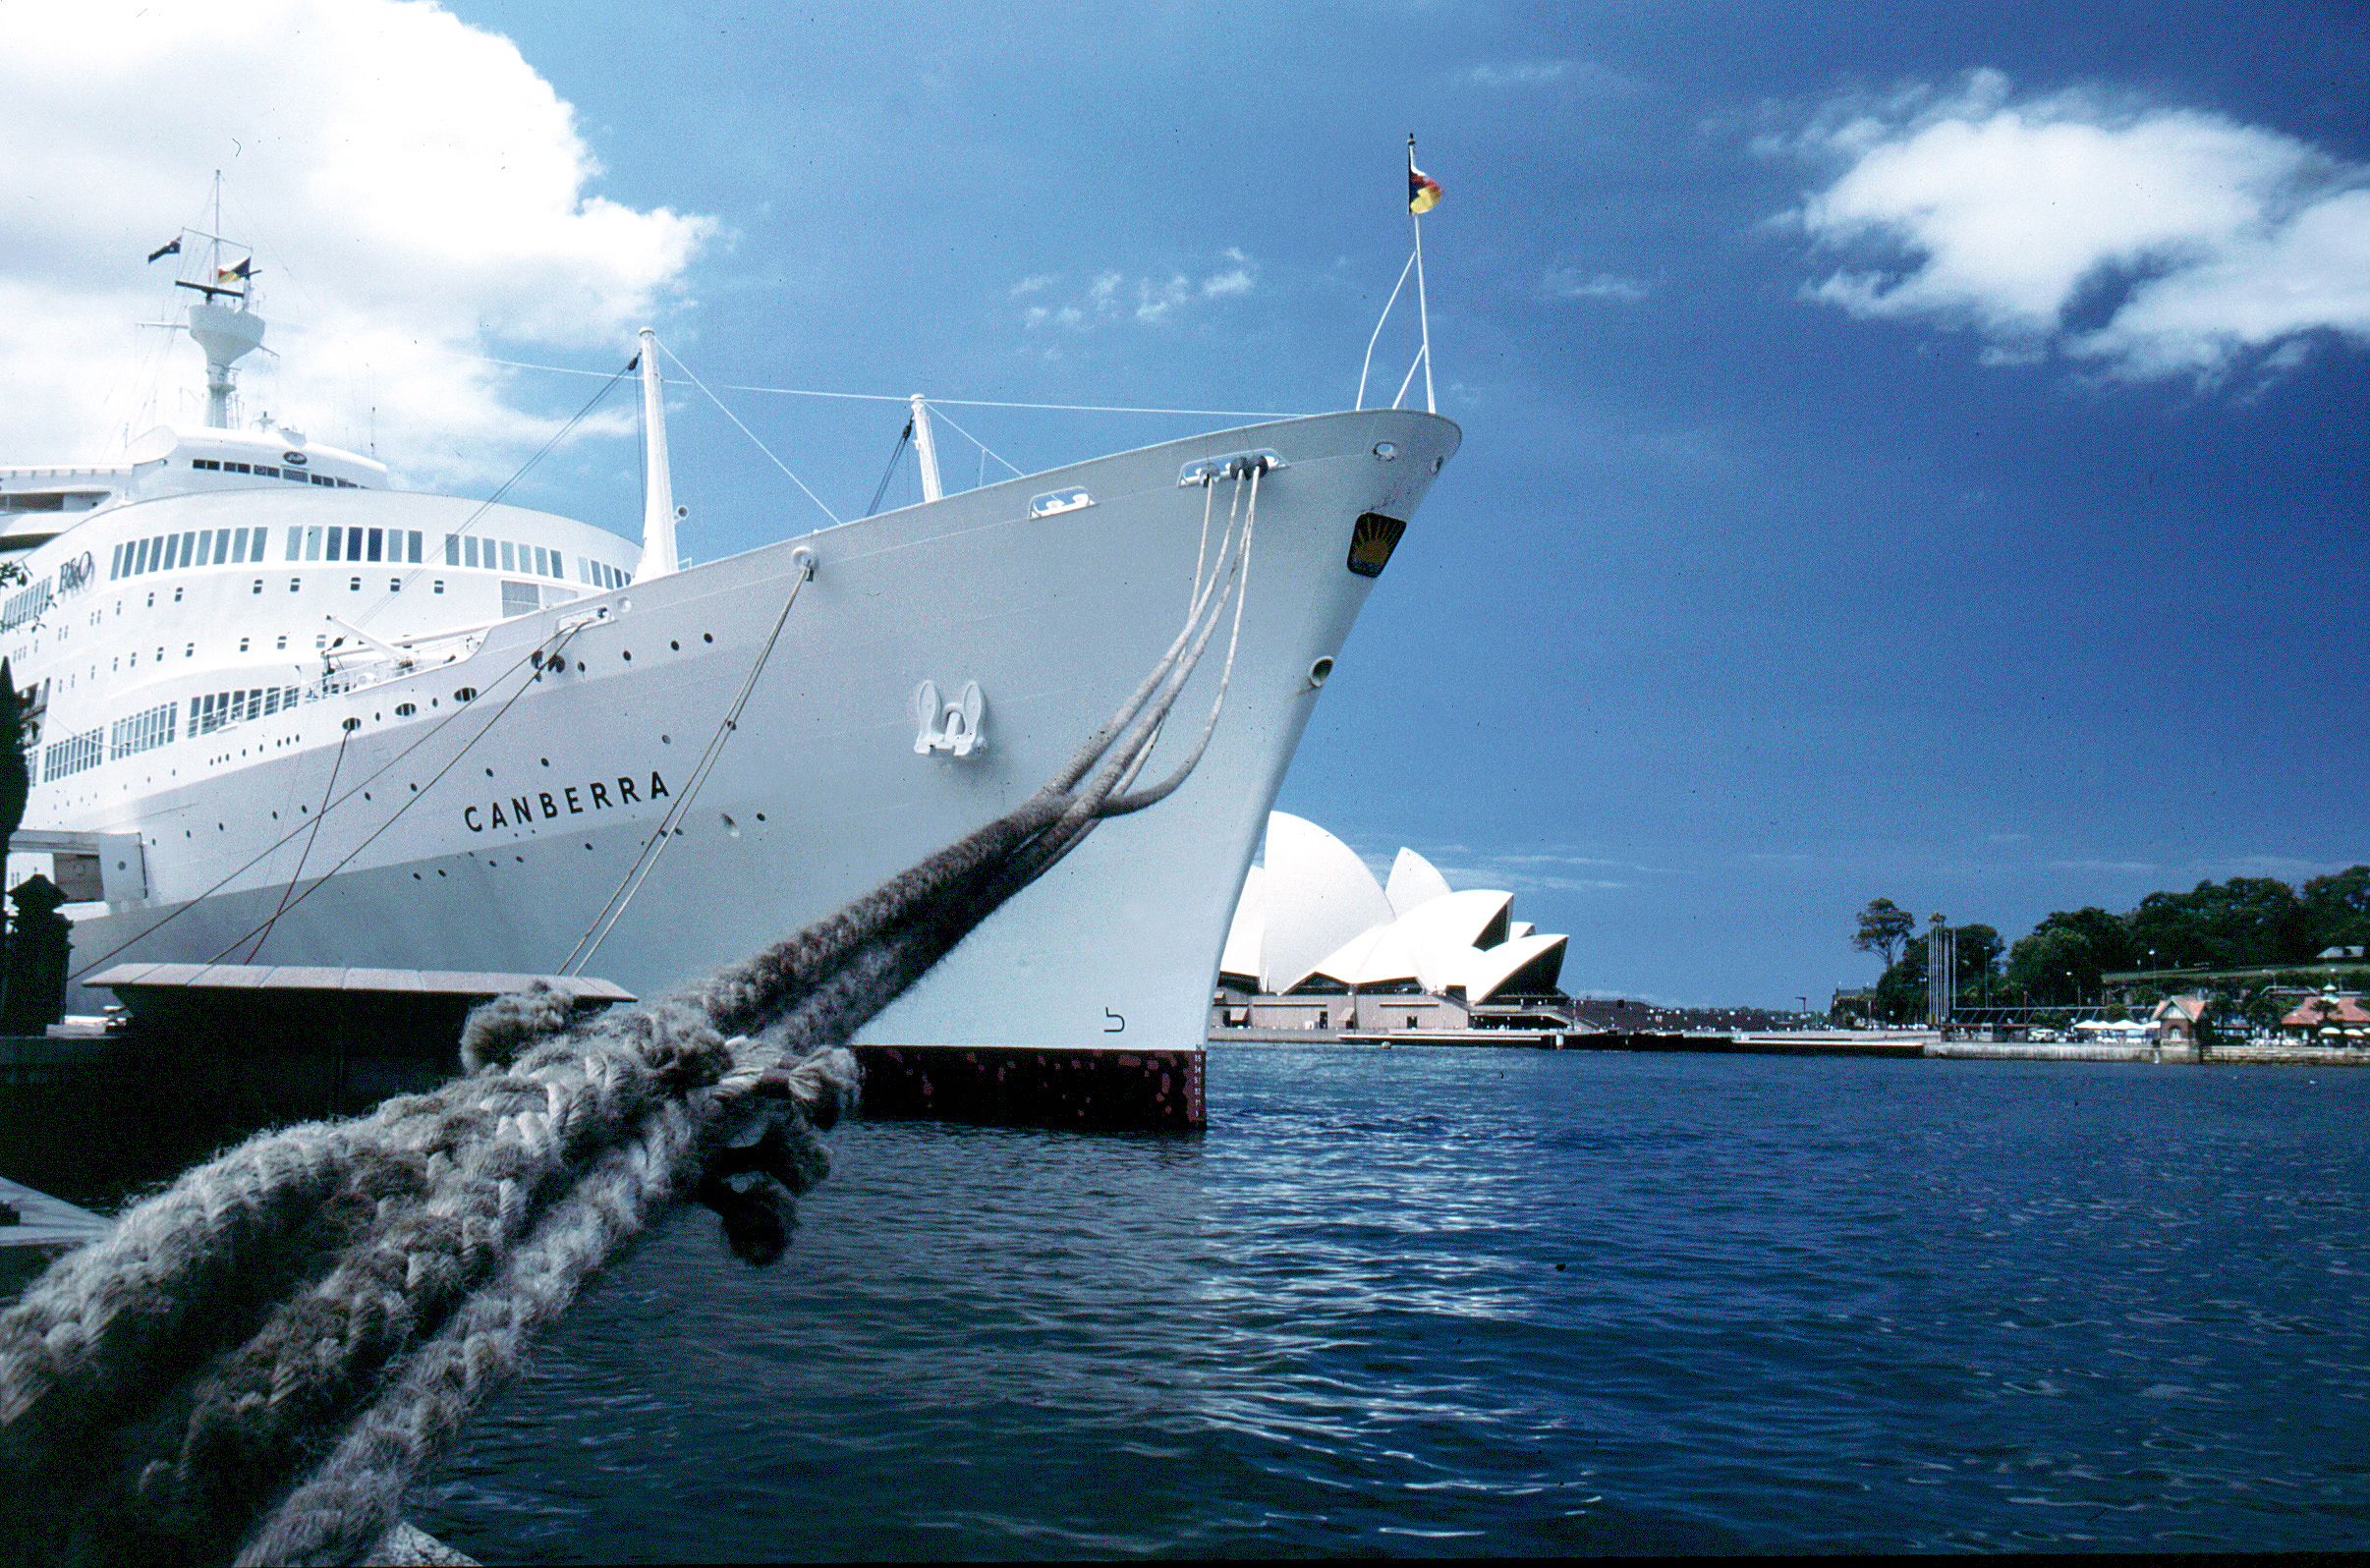 SS Canberra moored in Sydney Harbour.